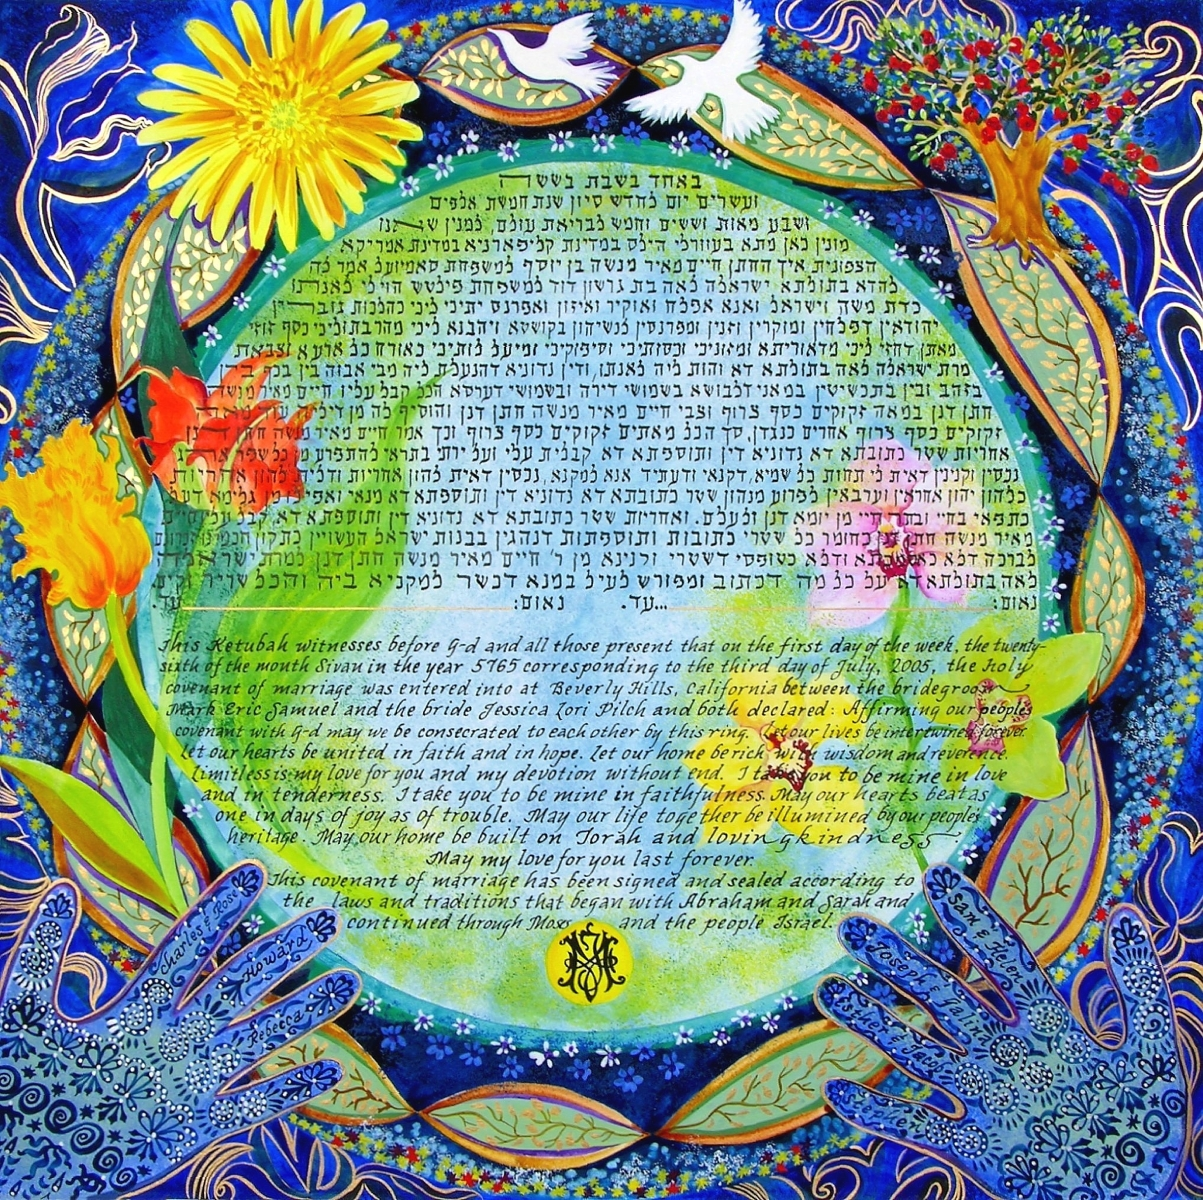 Monogram Ketubah, 2005, Beverly Hills, California